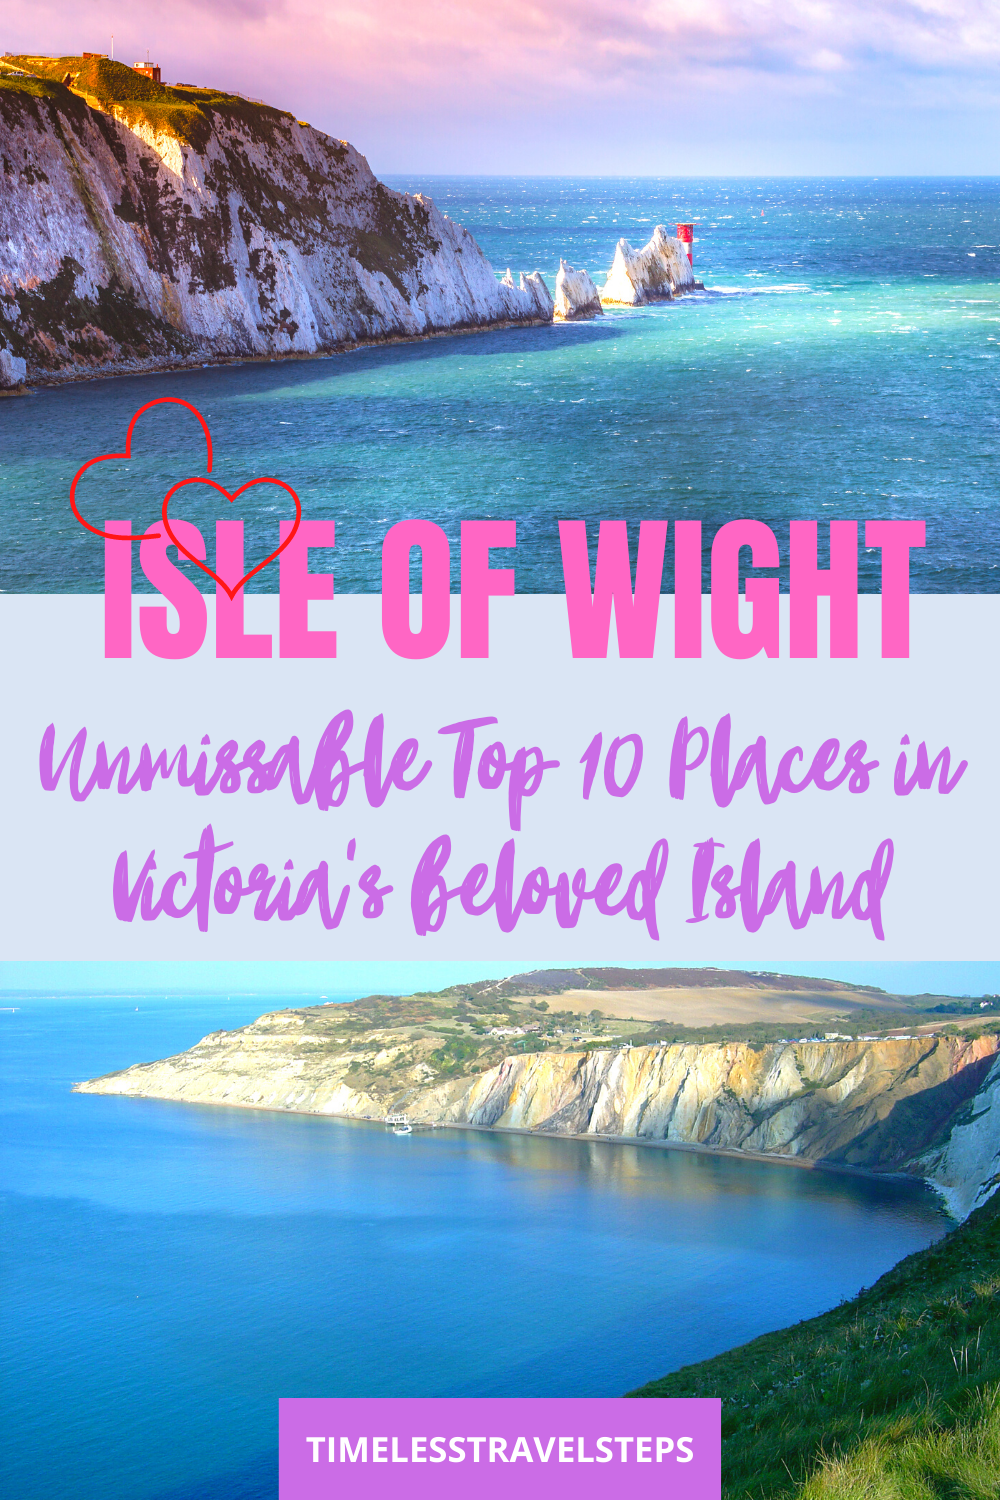 Indulge in the 10 experiences of the Victorian love affair in Isle of Wight that was regarded a perfect summer vacation getaway by Queen Victoria | Isle of Wight | Visit England | Victoria's beloved island | England's best | via @GGeorgina_timelesstravelsteps/